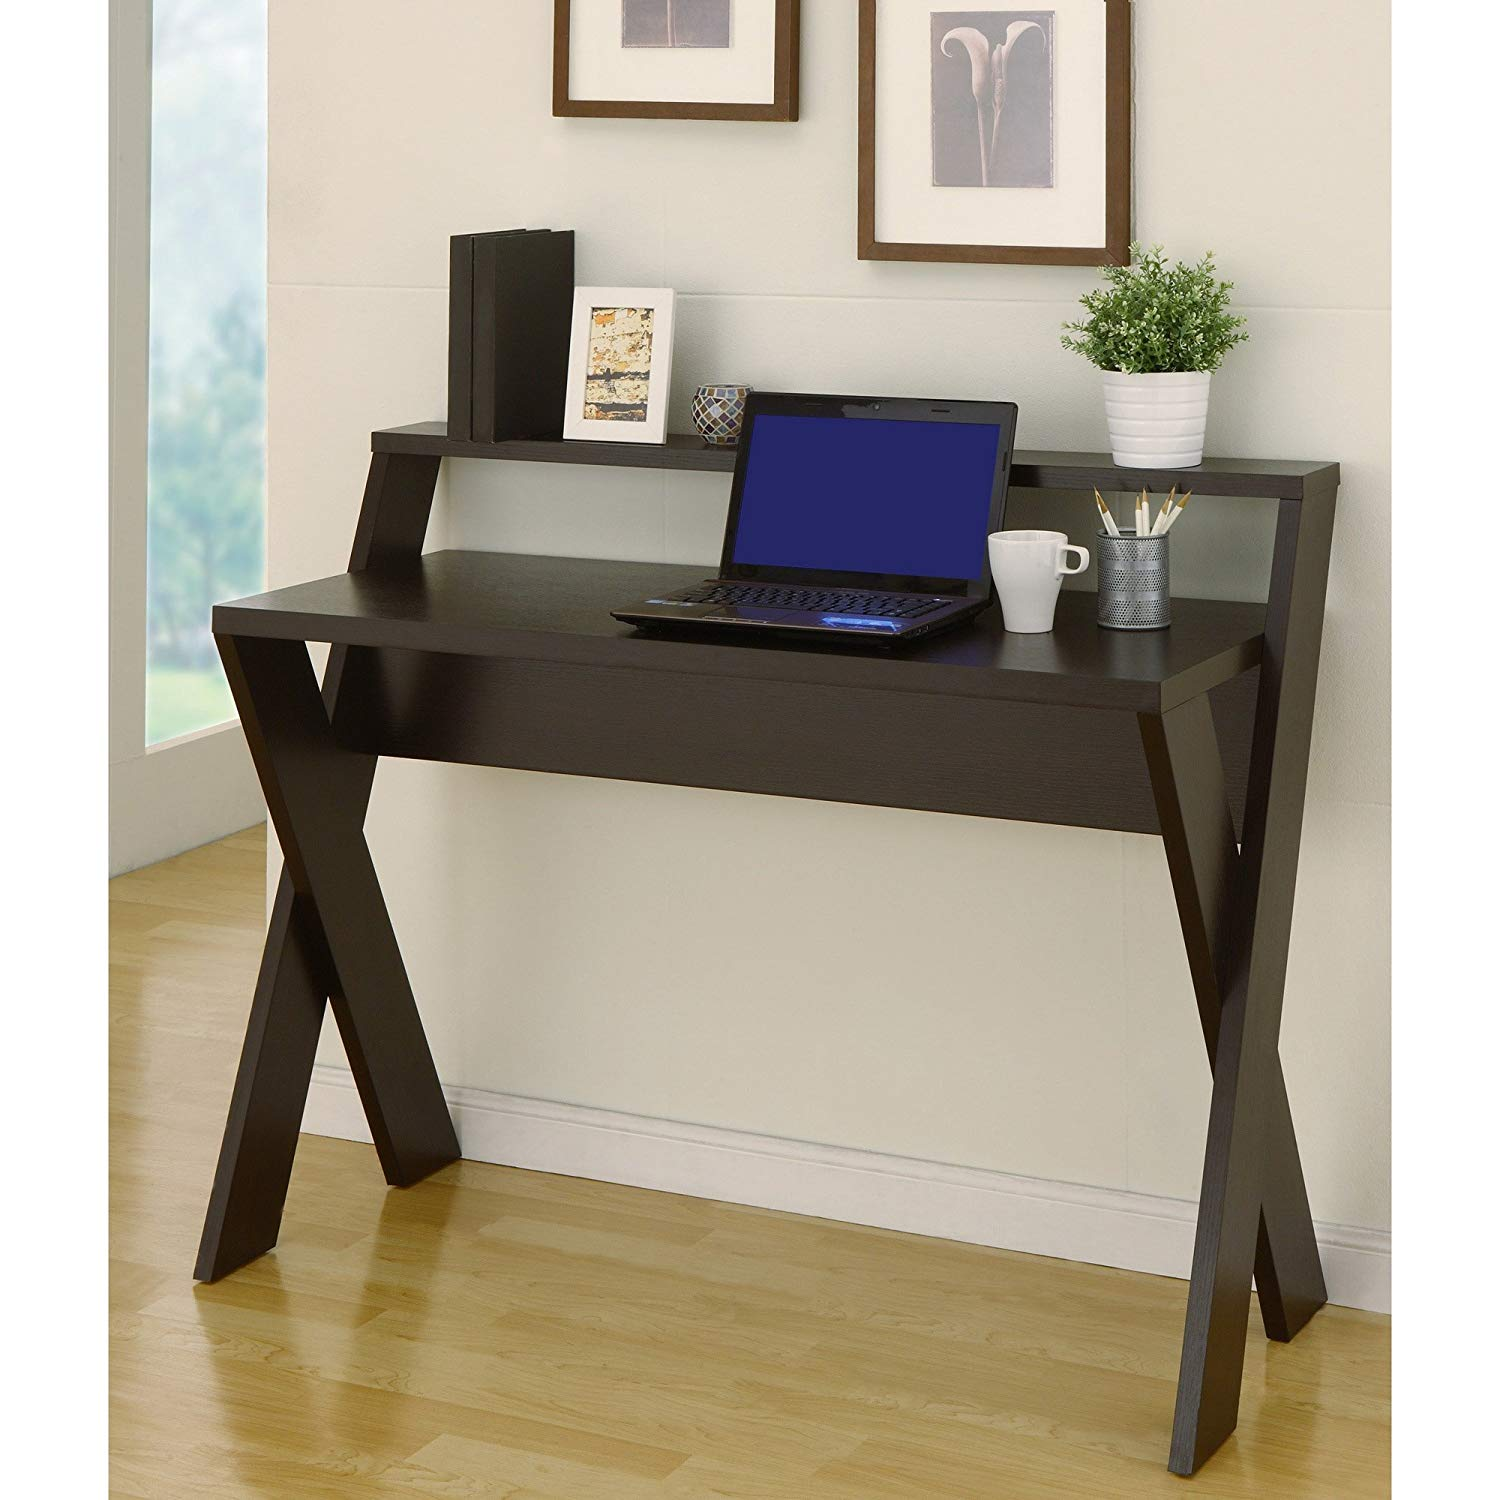 Intersecting Home/Office Desk, Made of Wood, MDF and Veneer, Contemporary and Sturdy, Ergonomic, Generous Top Shelf, X-Design, Greenguard Certified, Space Saving and Modern, Multiple Finishes